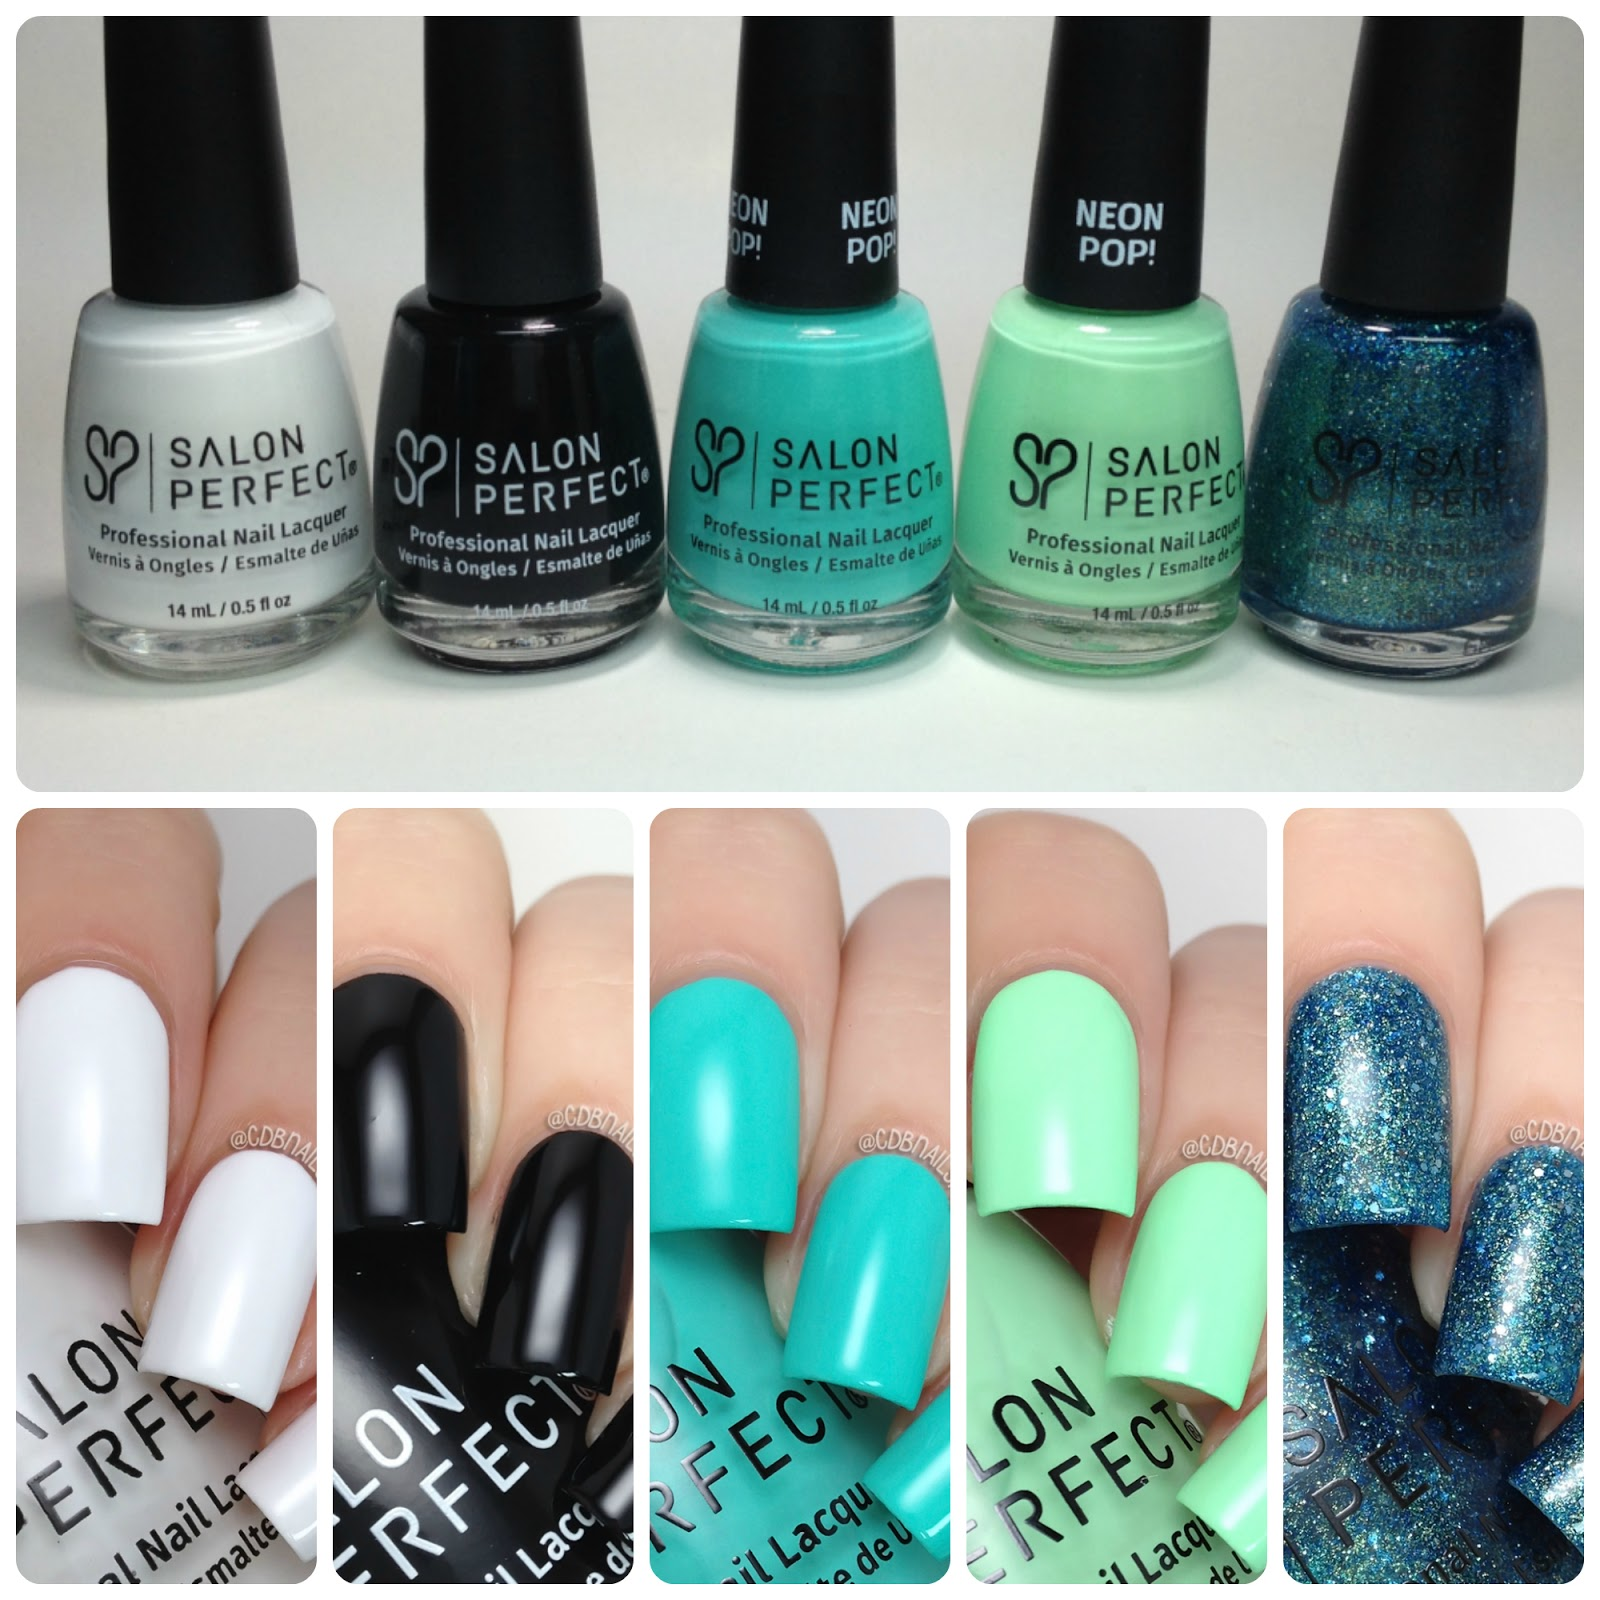 cdbnails: Salon Perfect | Review Part 2